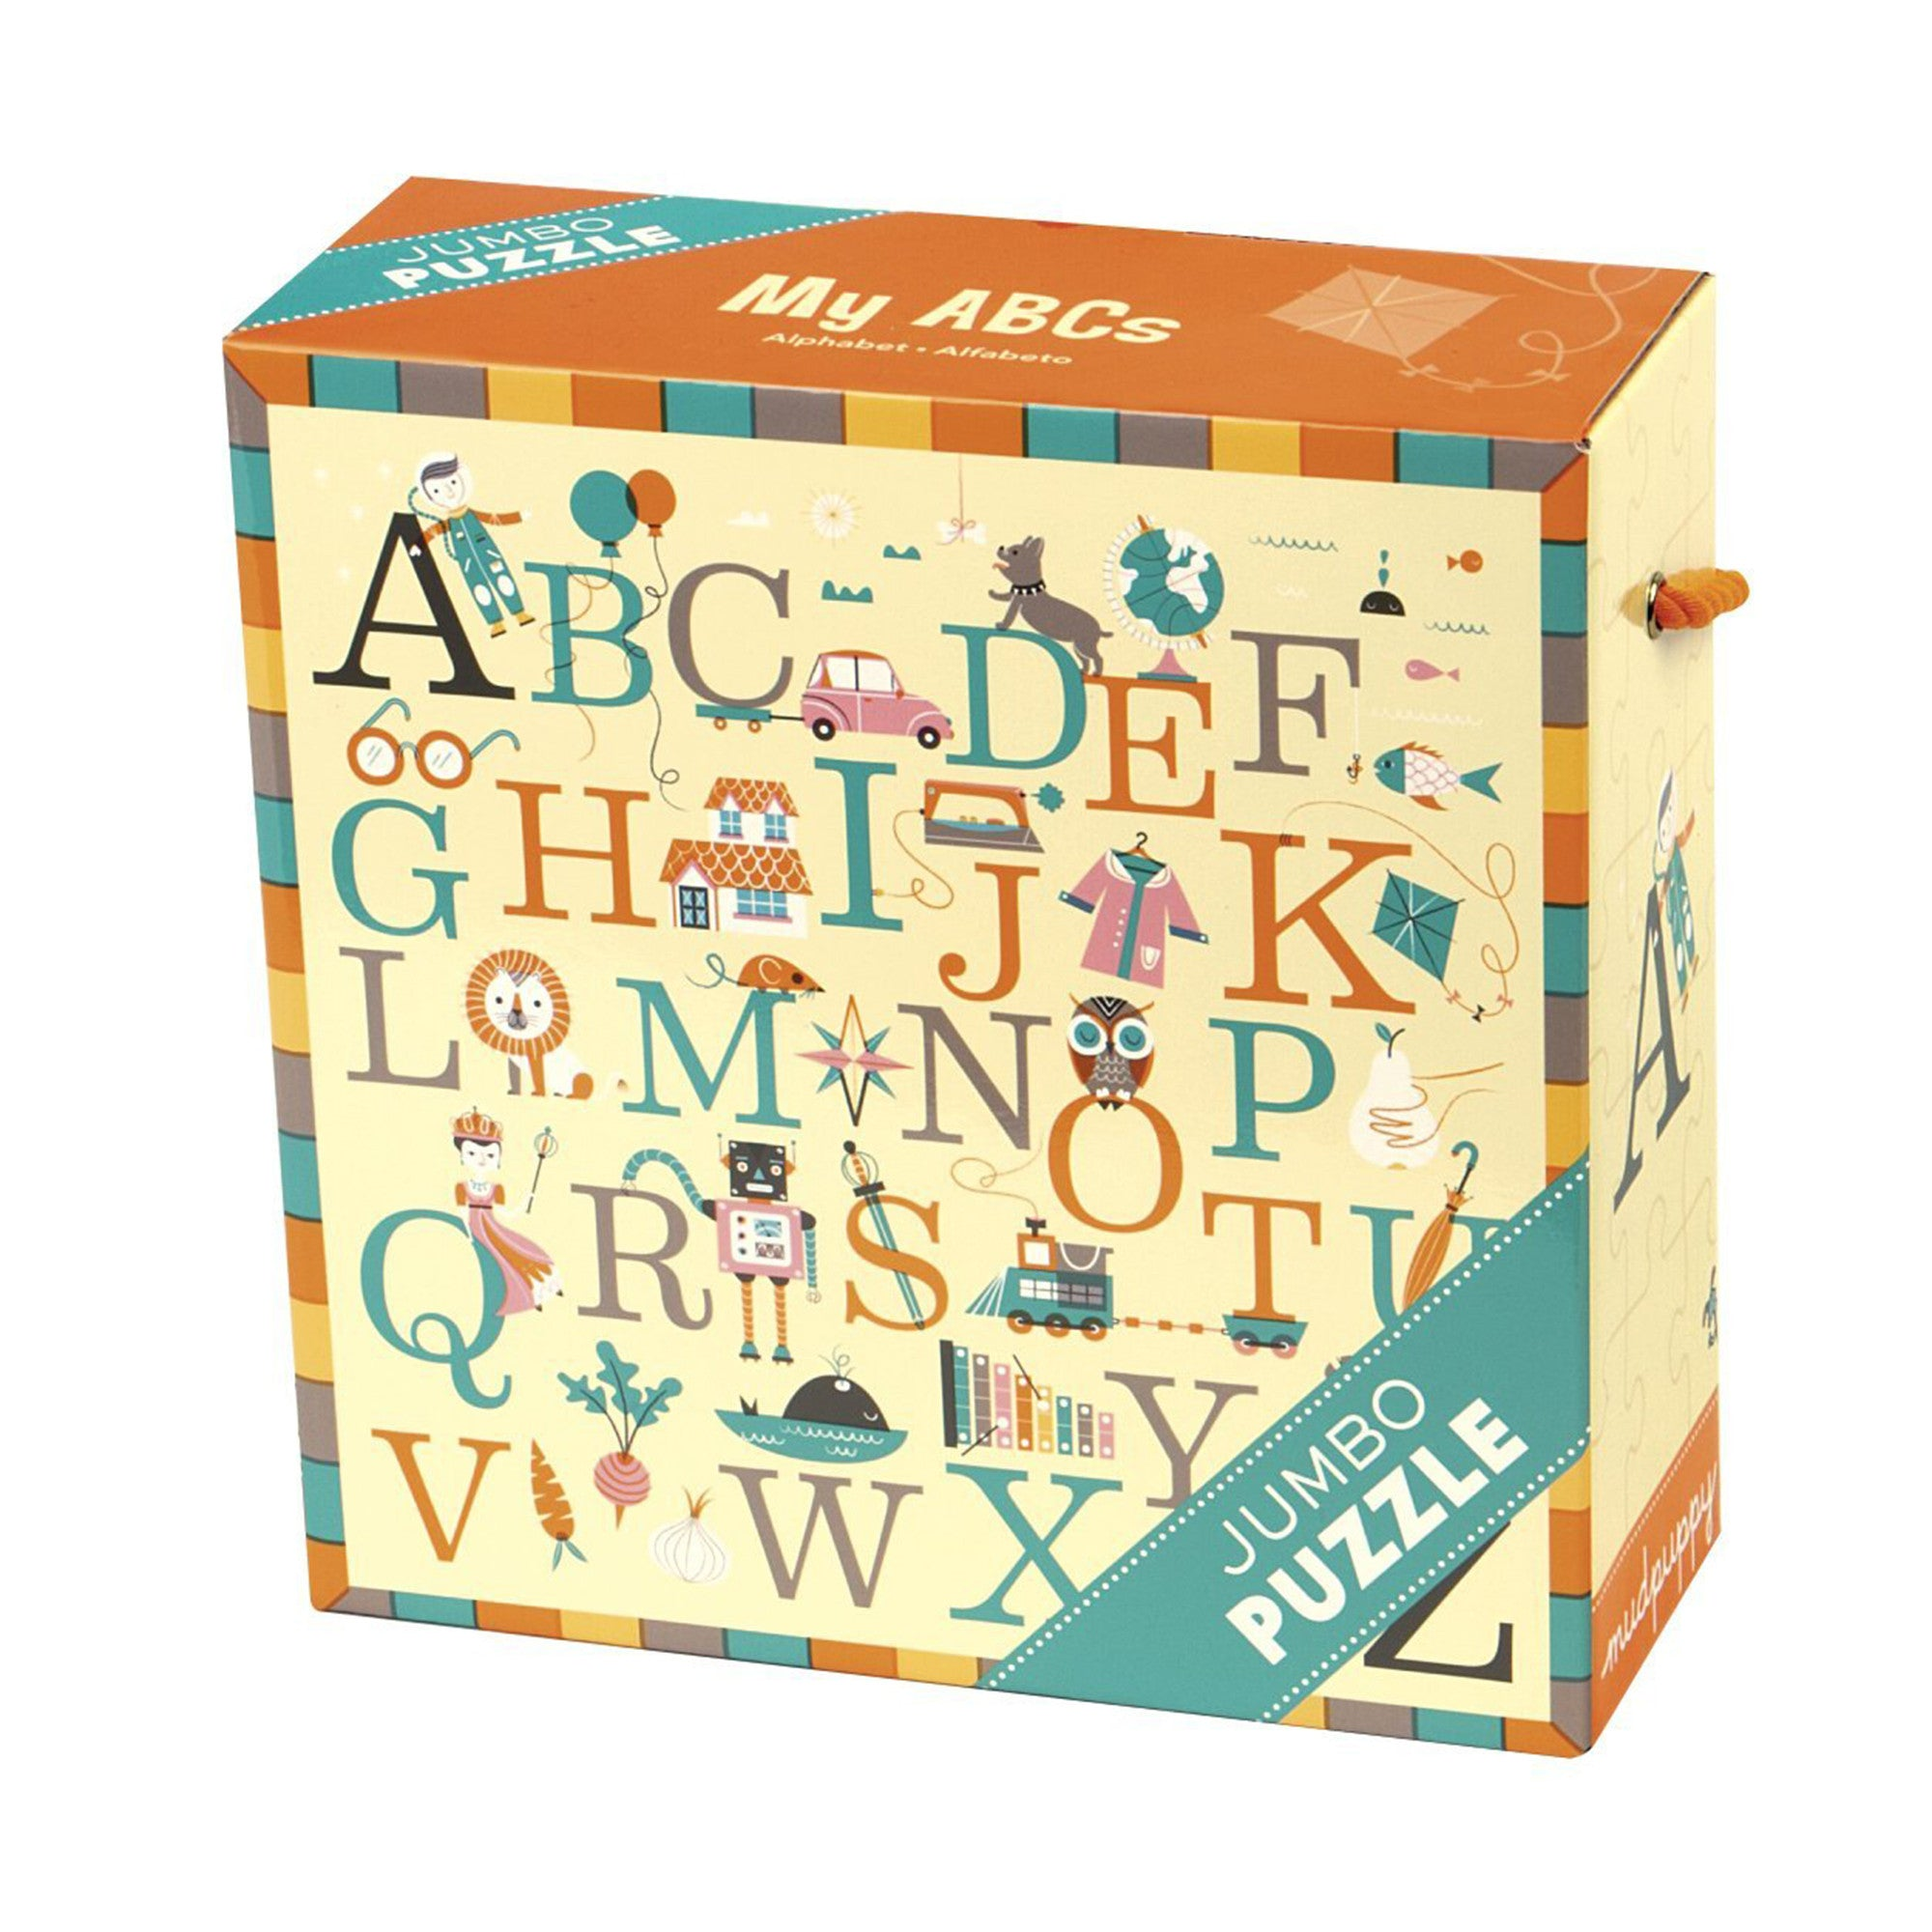 MudPuppy Jumbo Puzzle 25 Piece Mudpuppy Puzzles ABC's at Little Earth Nest Eco Shop